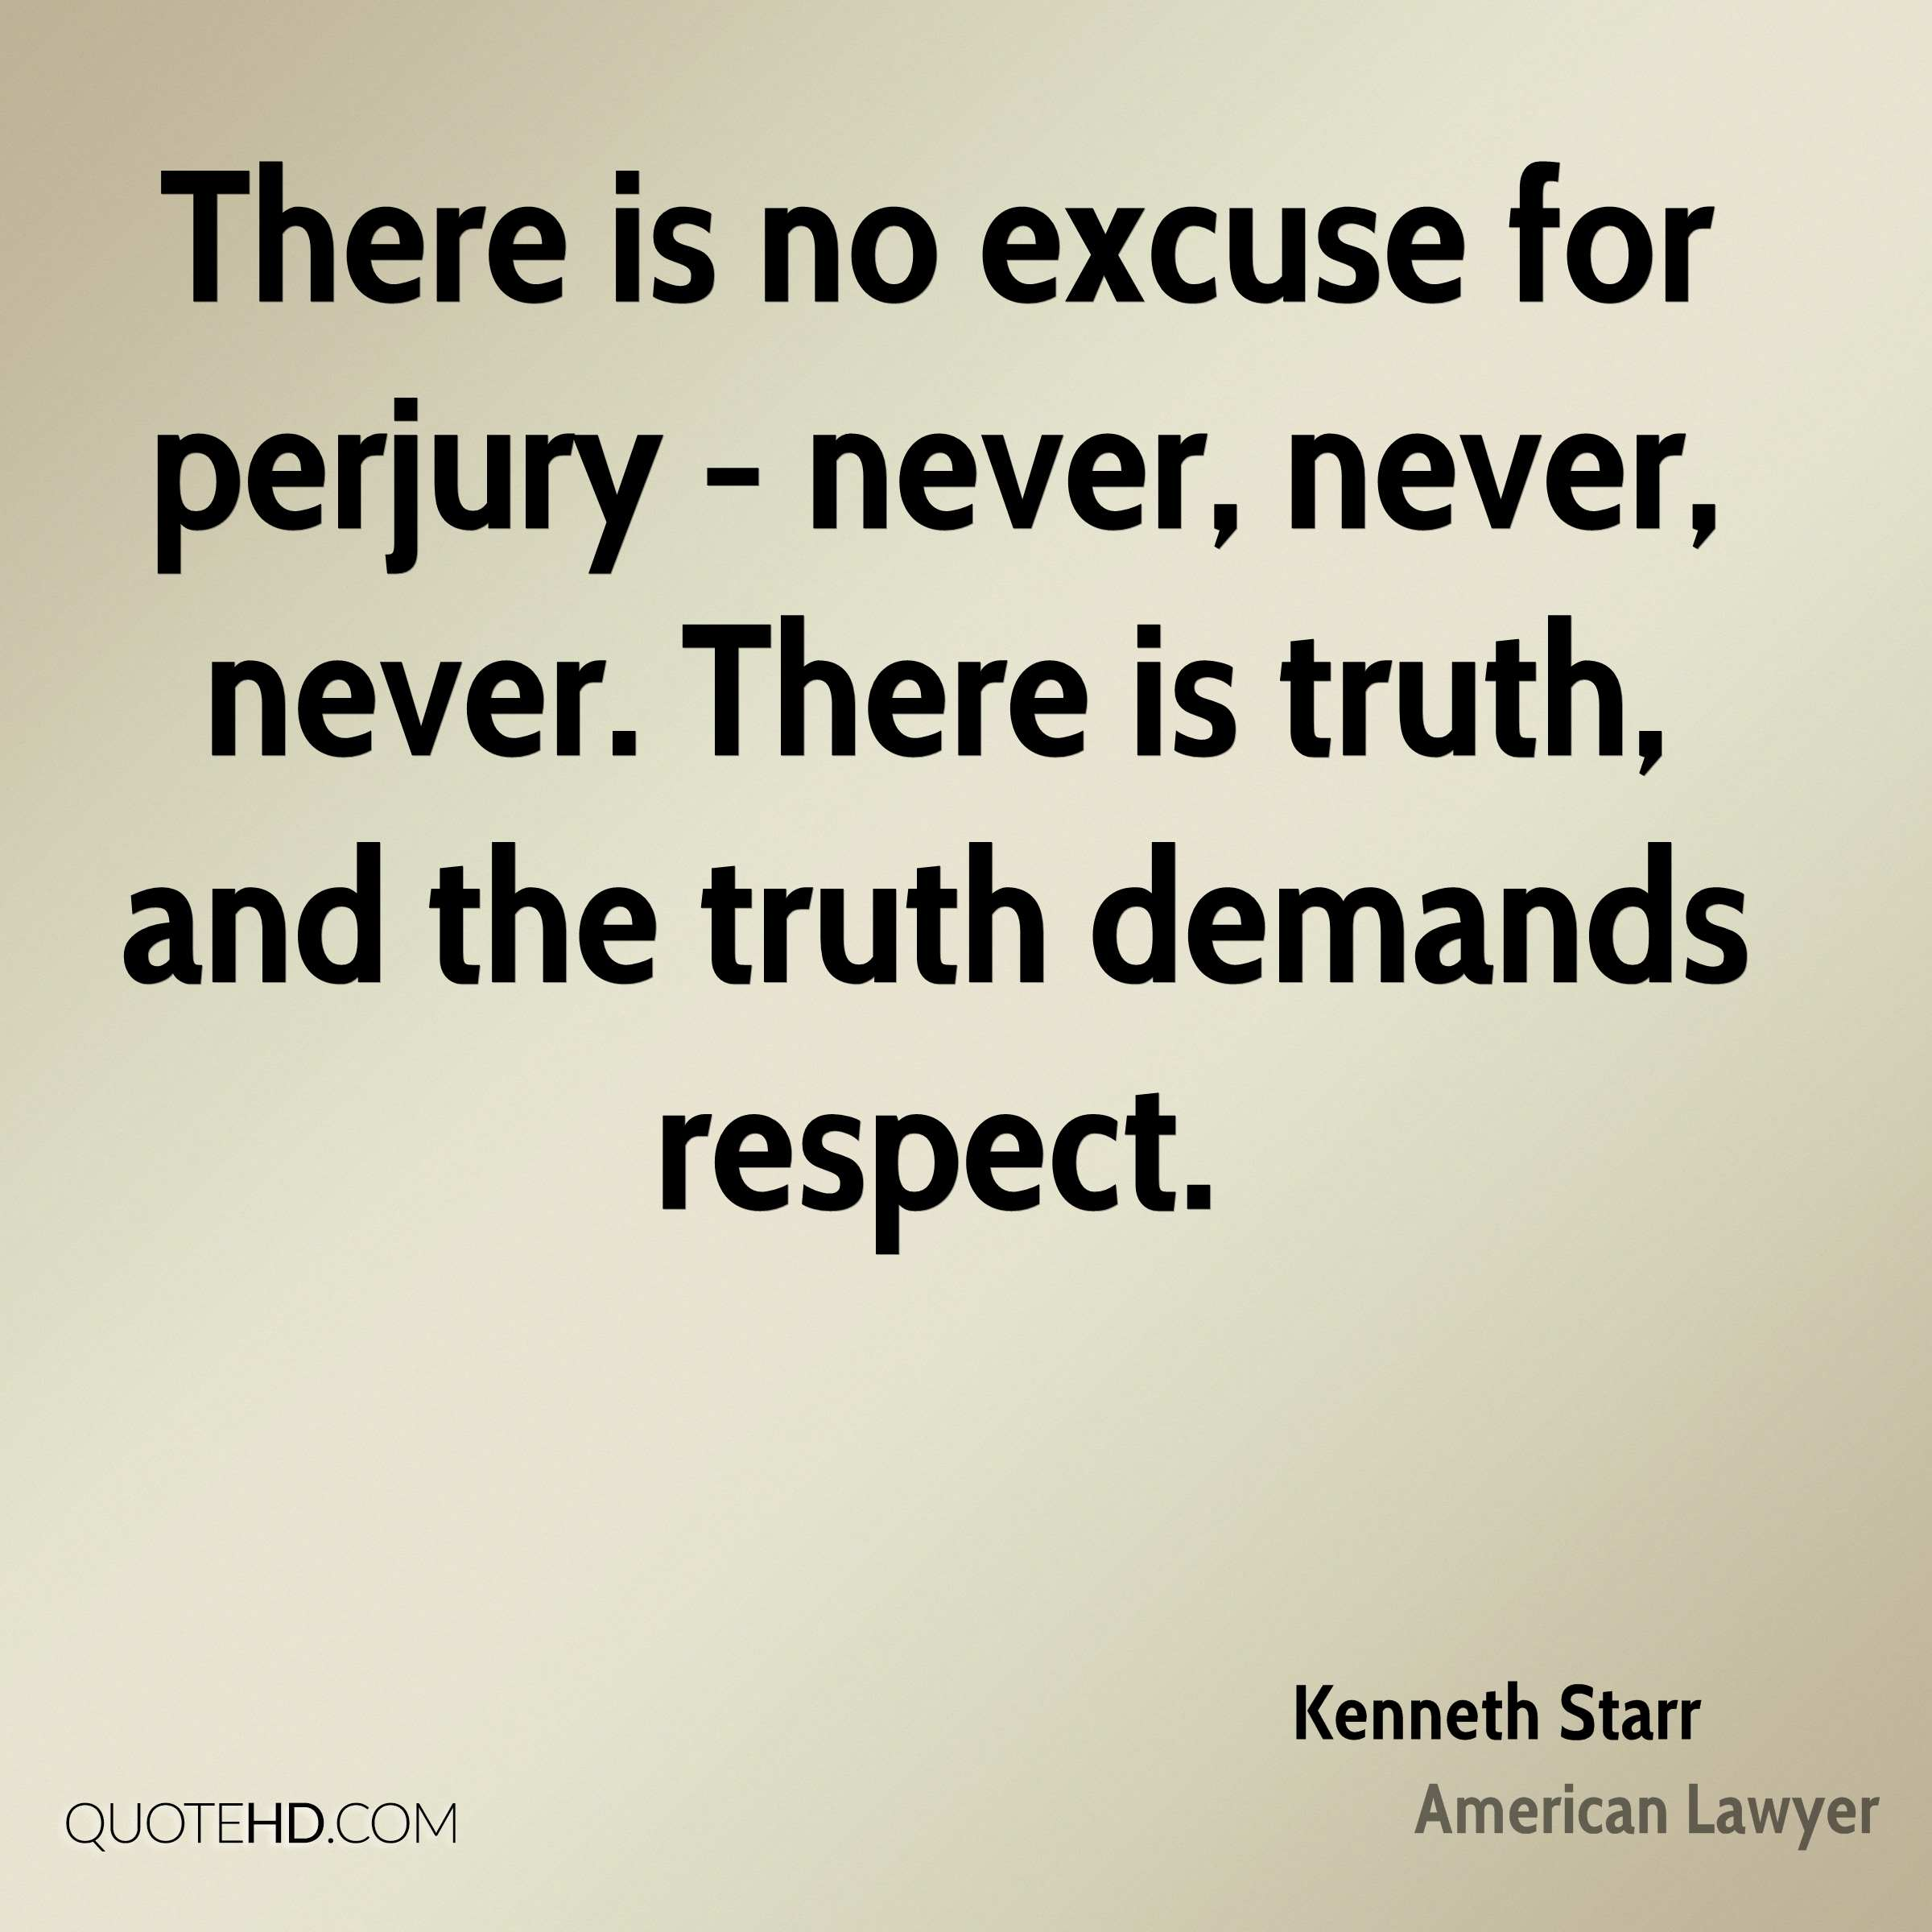 There is no excuse for perjury - never, never, never. There is truth, and the truth demands respect.